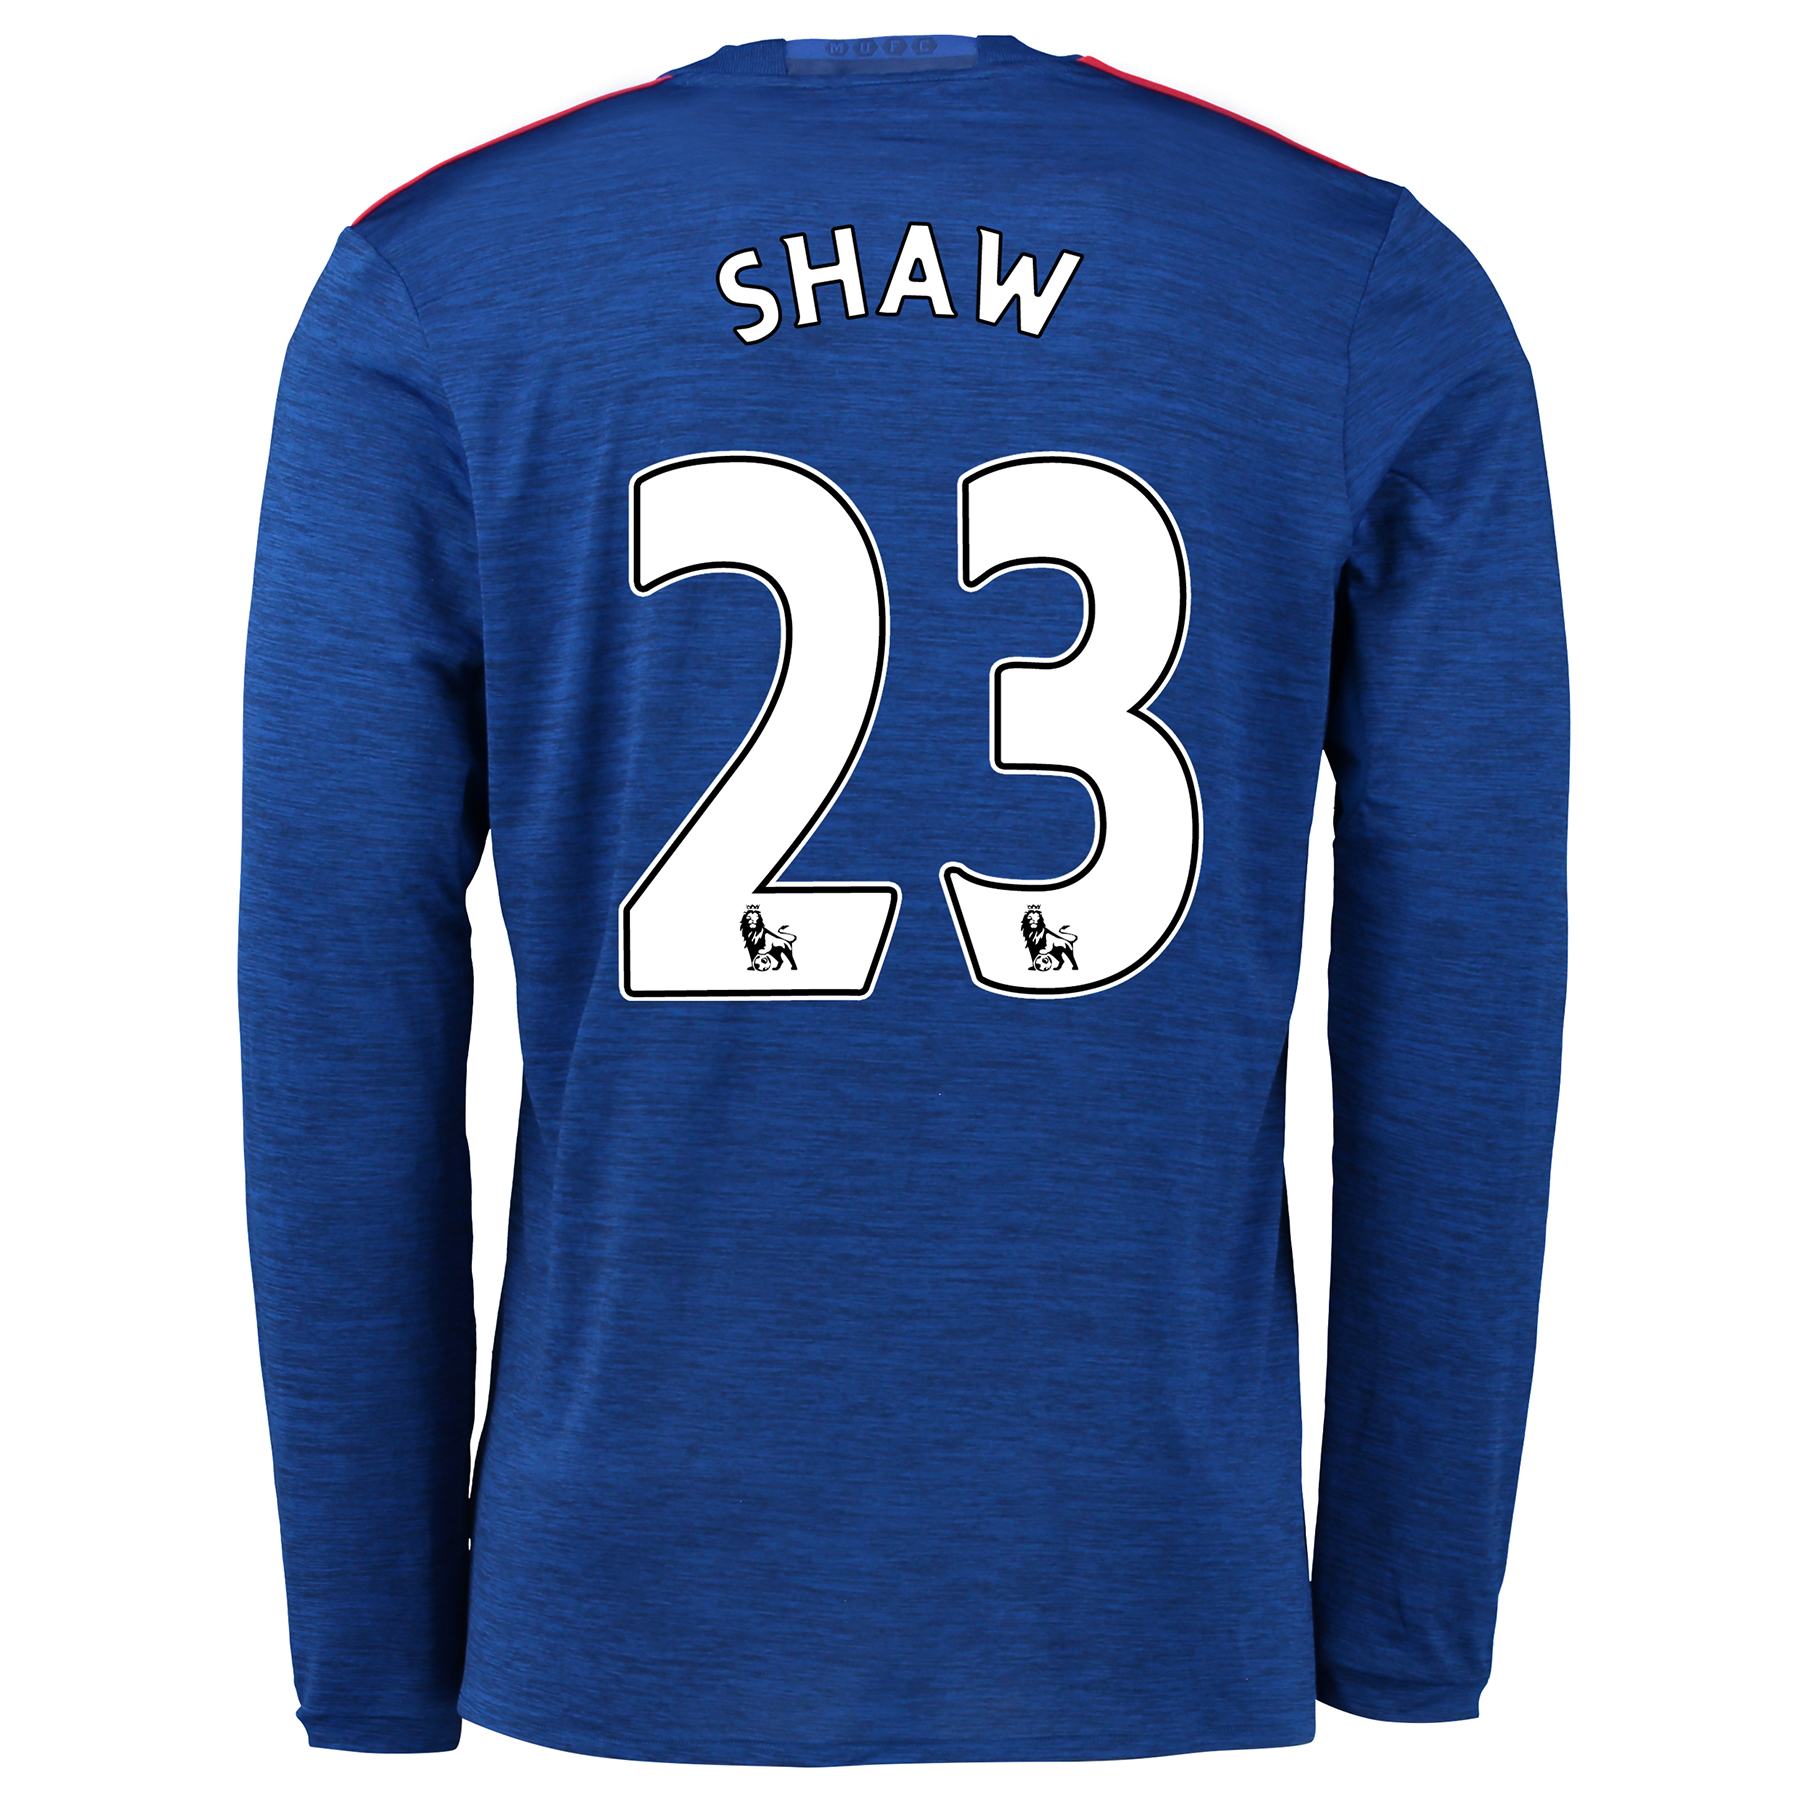 Manchester United Away Shirt 2016-17 - Long Sleeve with Shaw 23 printi